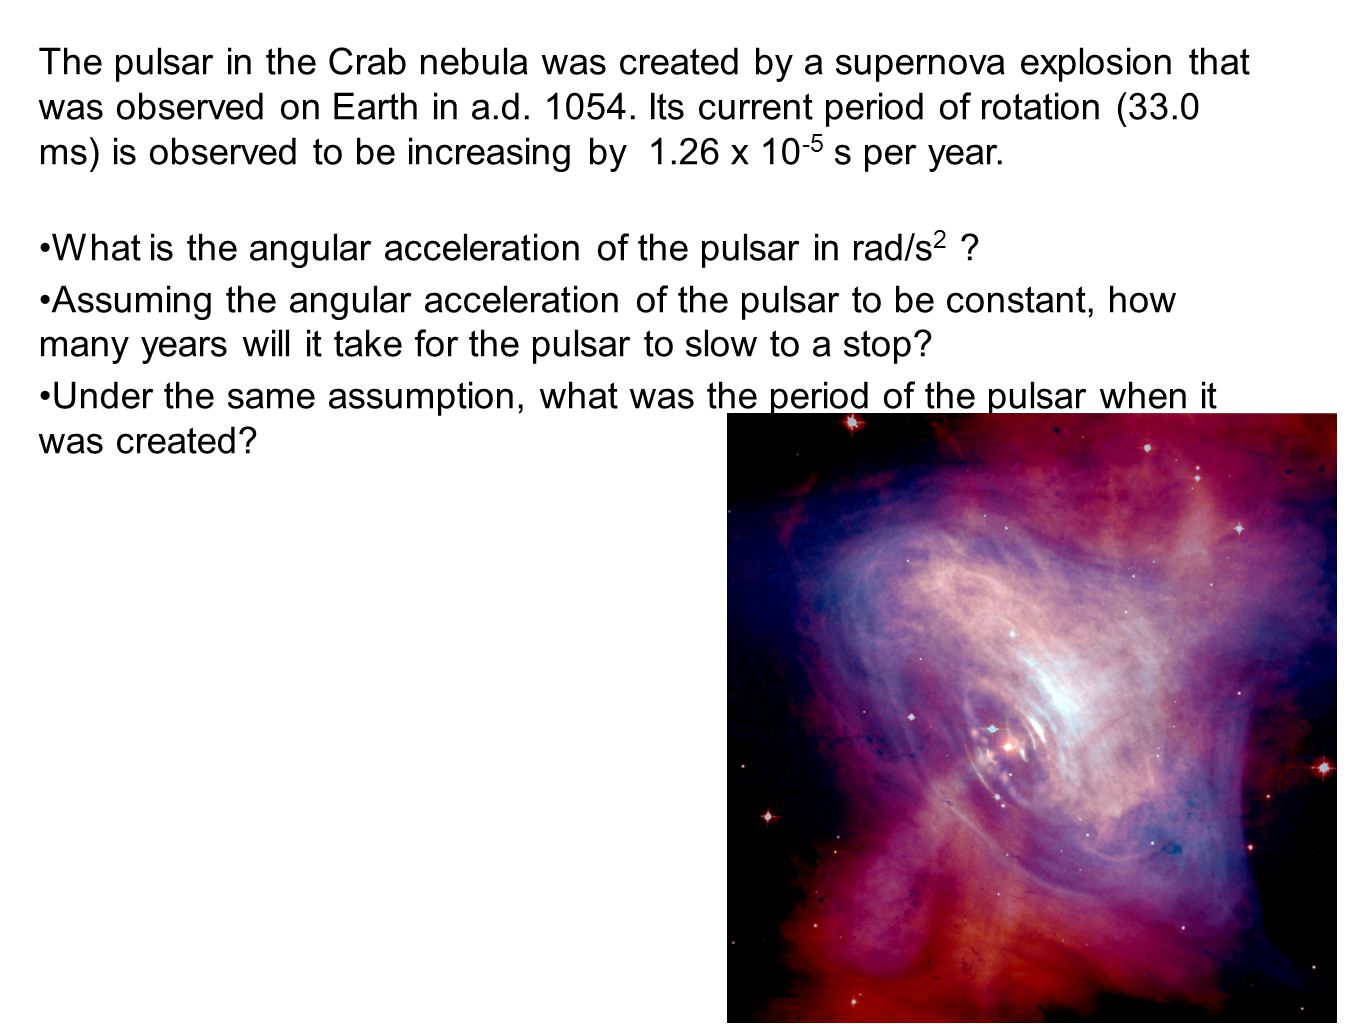 The pulsar in the Crab nebula was created by a supernova explosion that was observed on Earth in a.d. 1054. Its current period of rotation (33.0 ms) is observed to be increasing by 1.26 x 10-5 s per year.